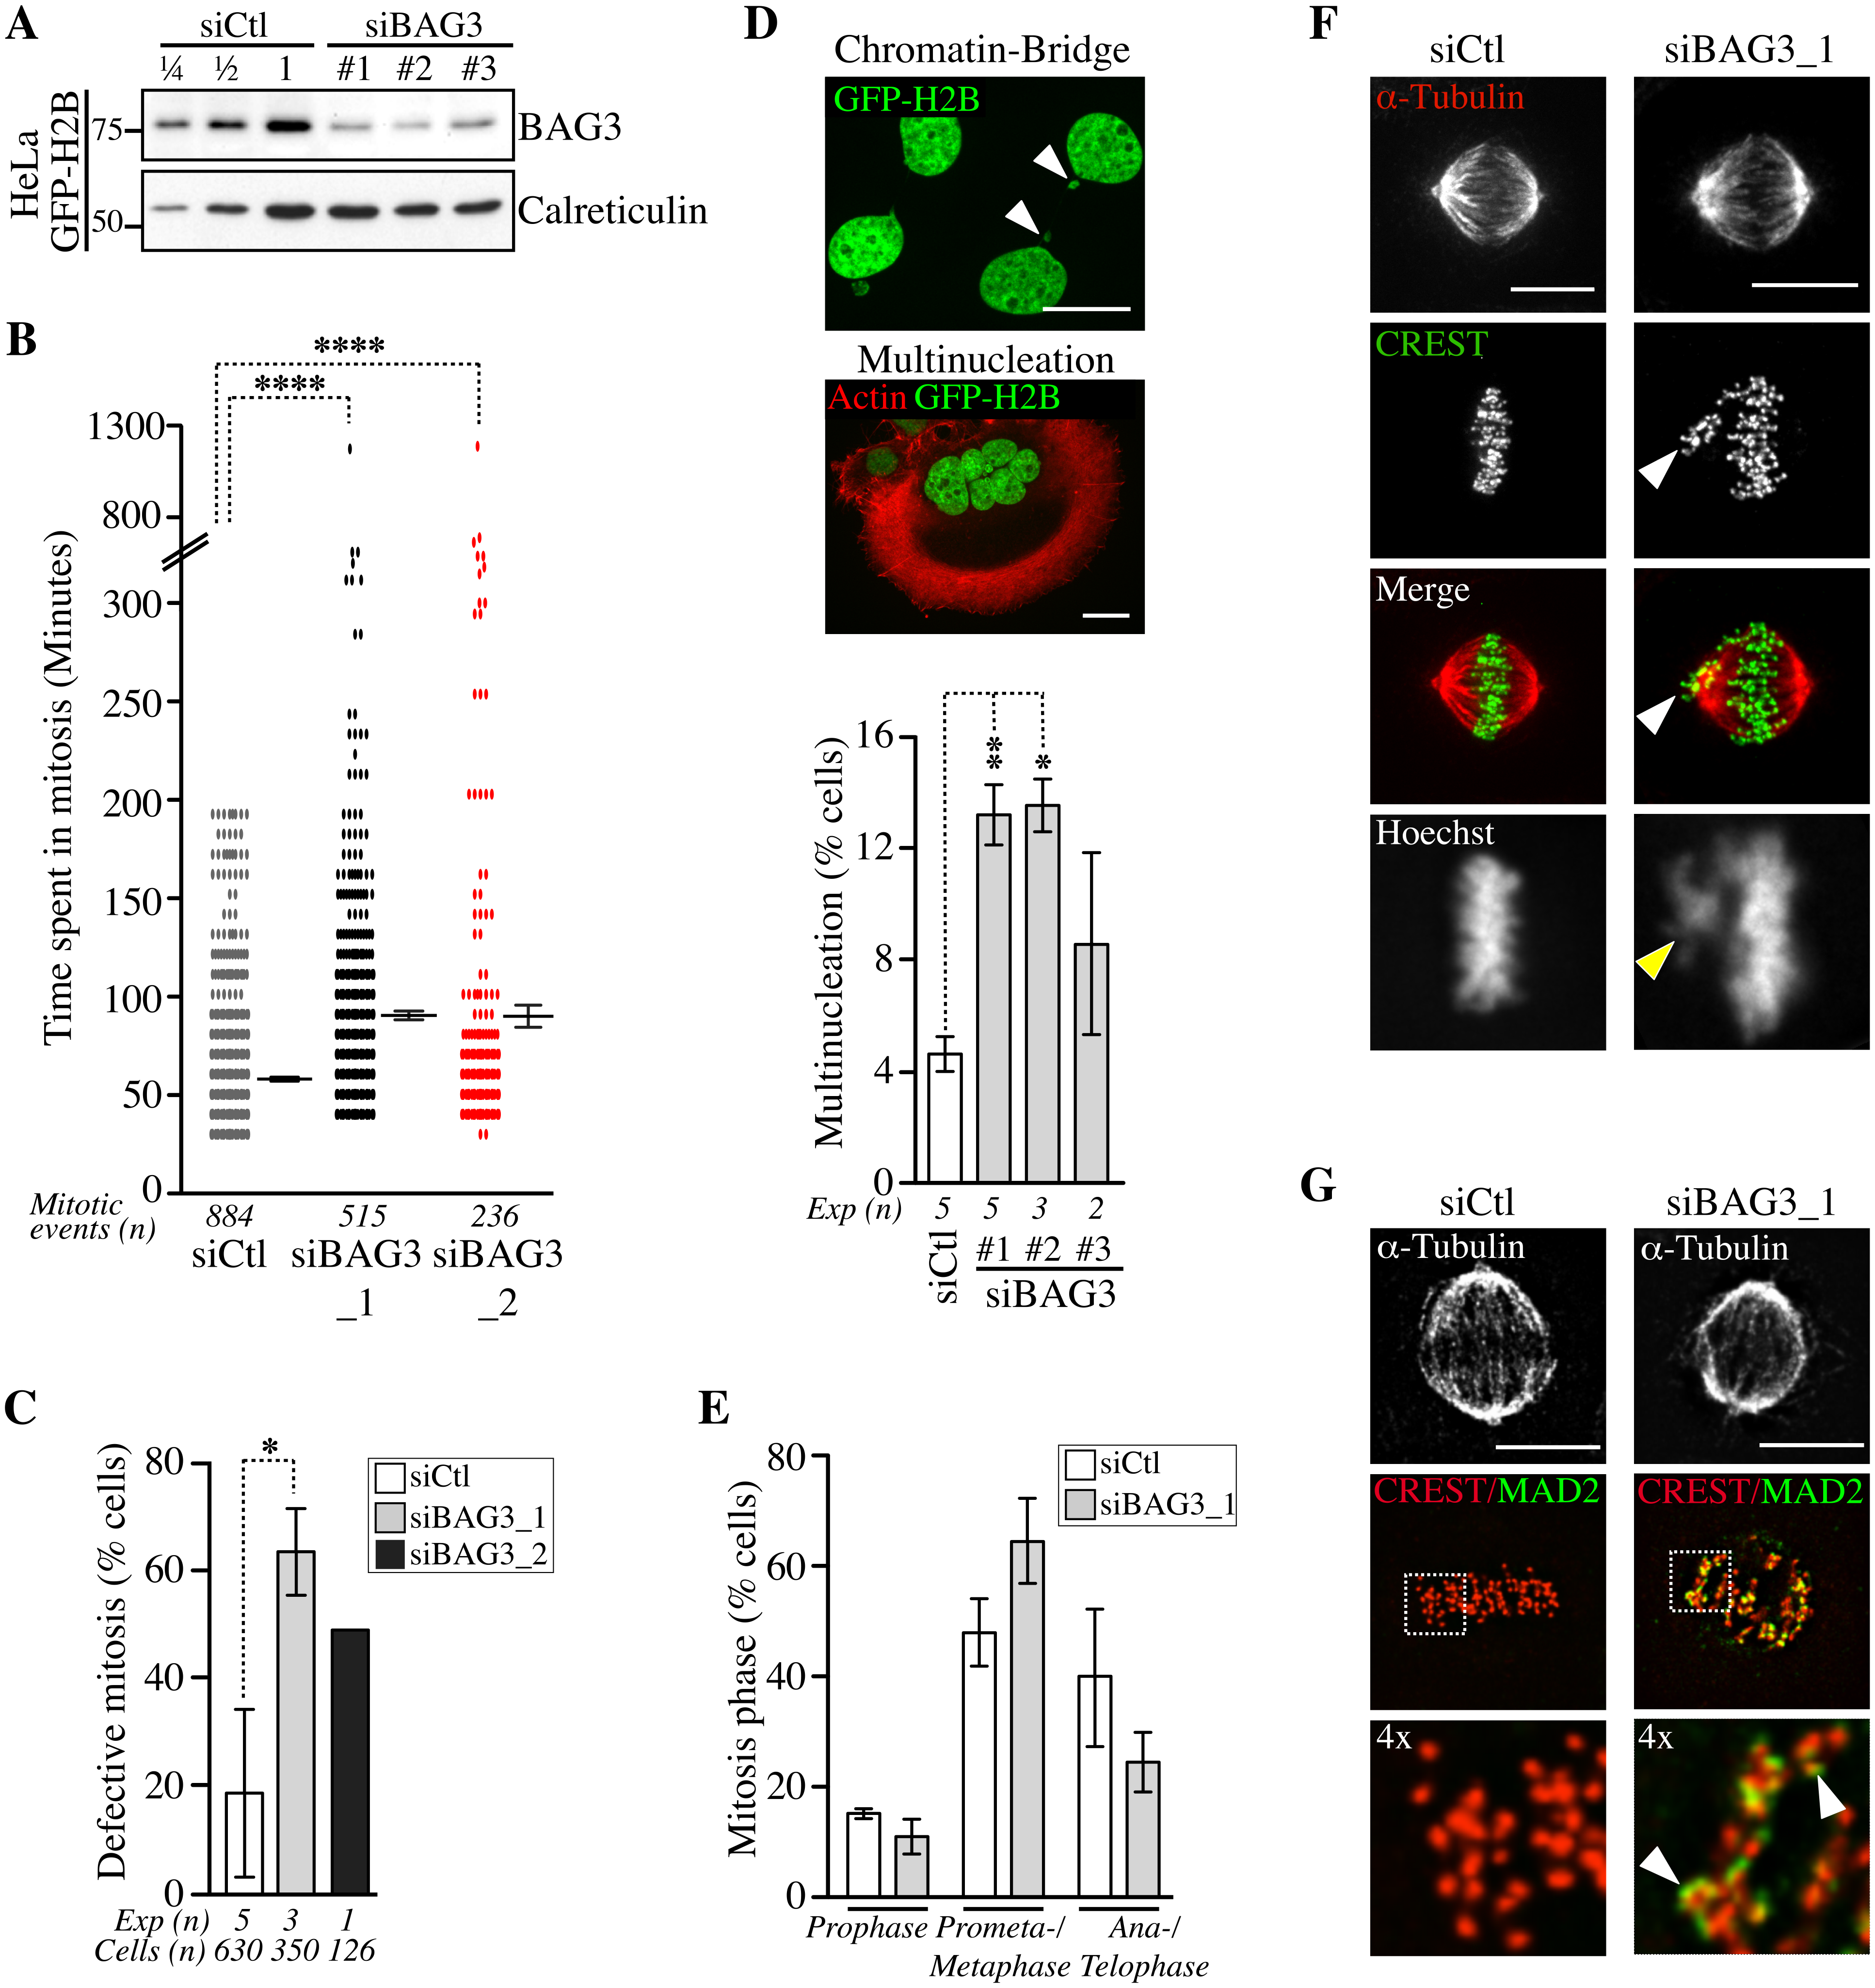 Depletion of BAG3 delays cells in mitosis and impairs chromosome segregation.